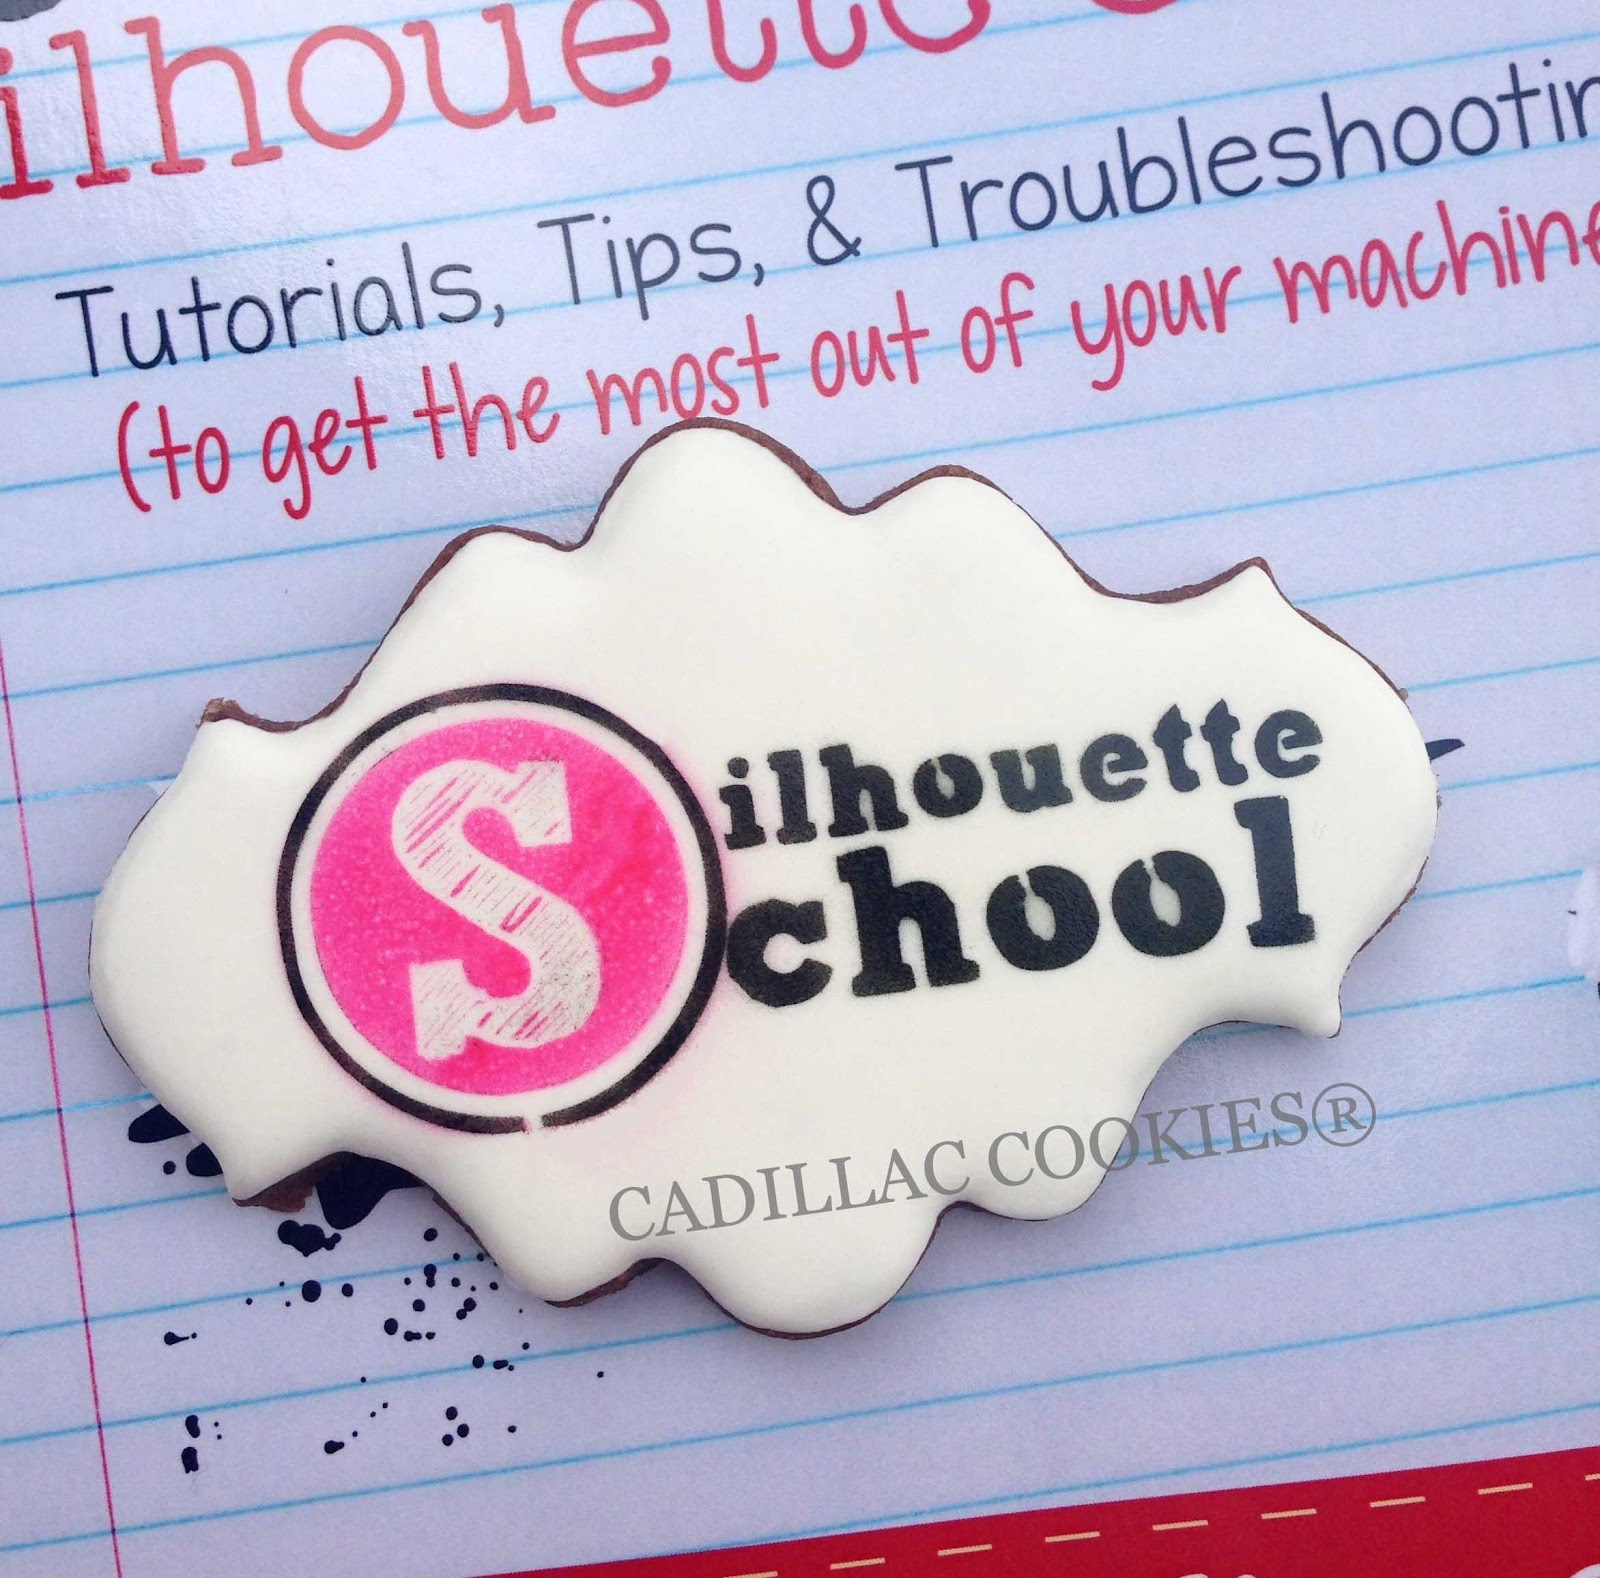 Cutting Cookie Stencils With Silhouette School Pin Circuit Die Cut Machine Cake On Pinterest Cameo Stencil Diy Do It Yourself